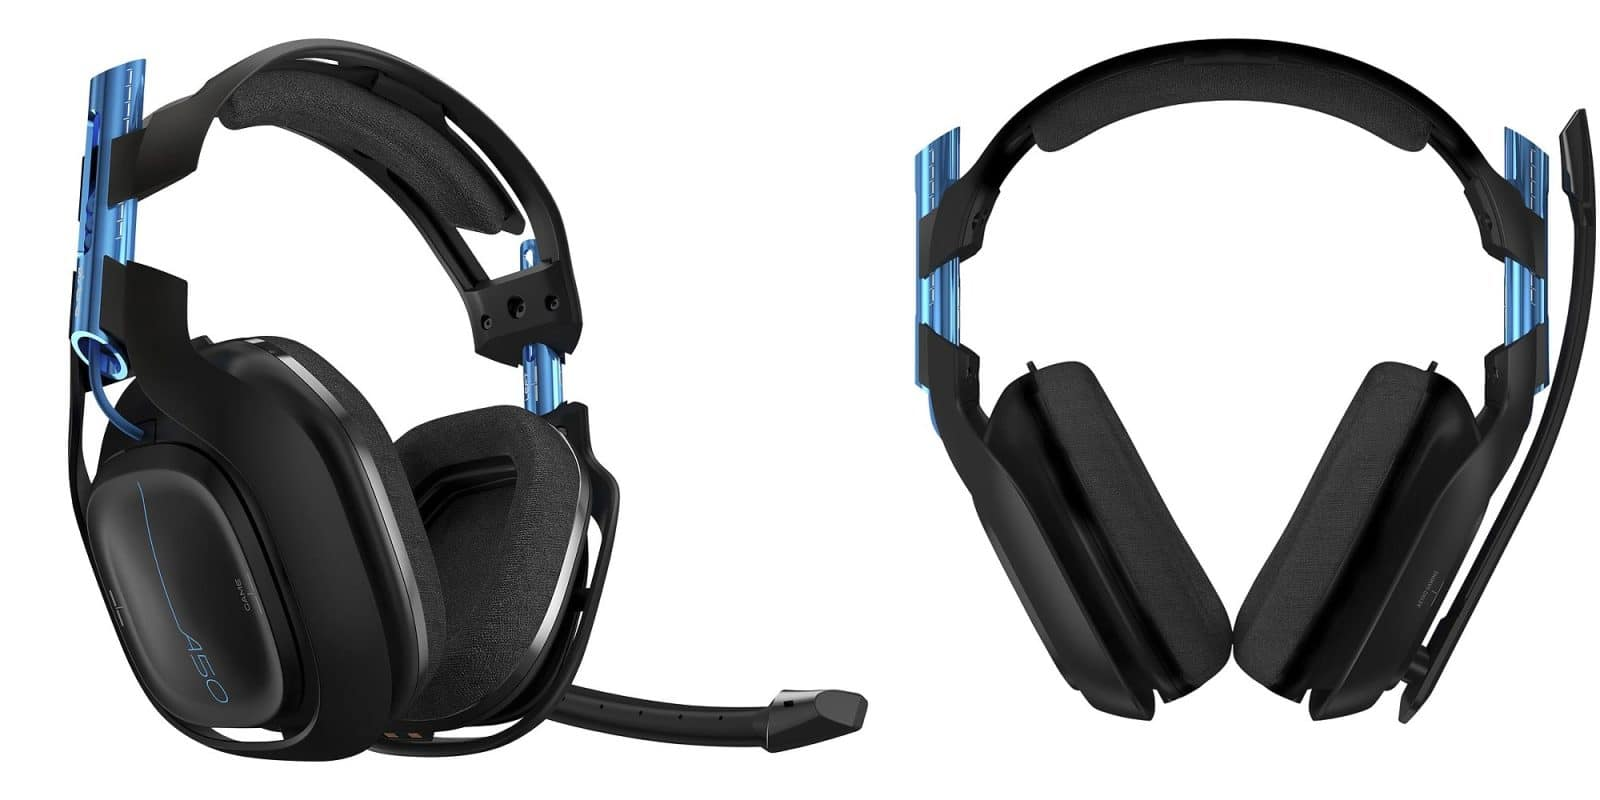 Astro A50 headset for ps4